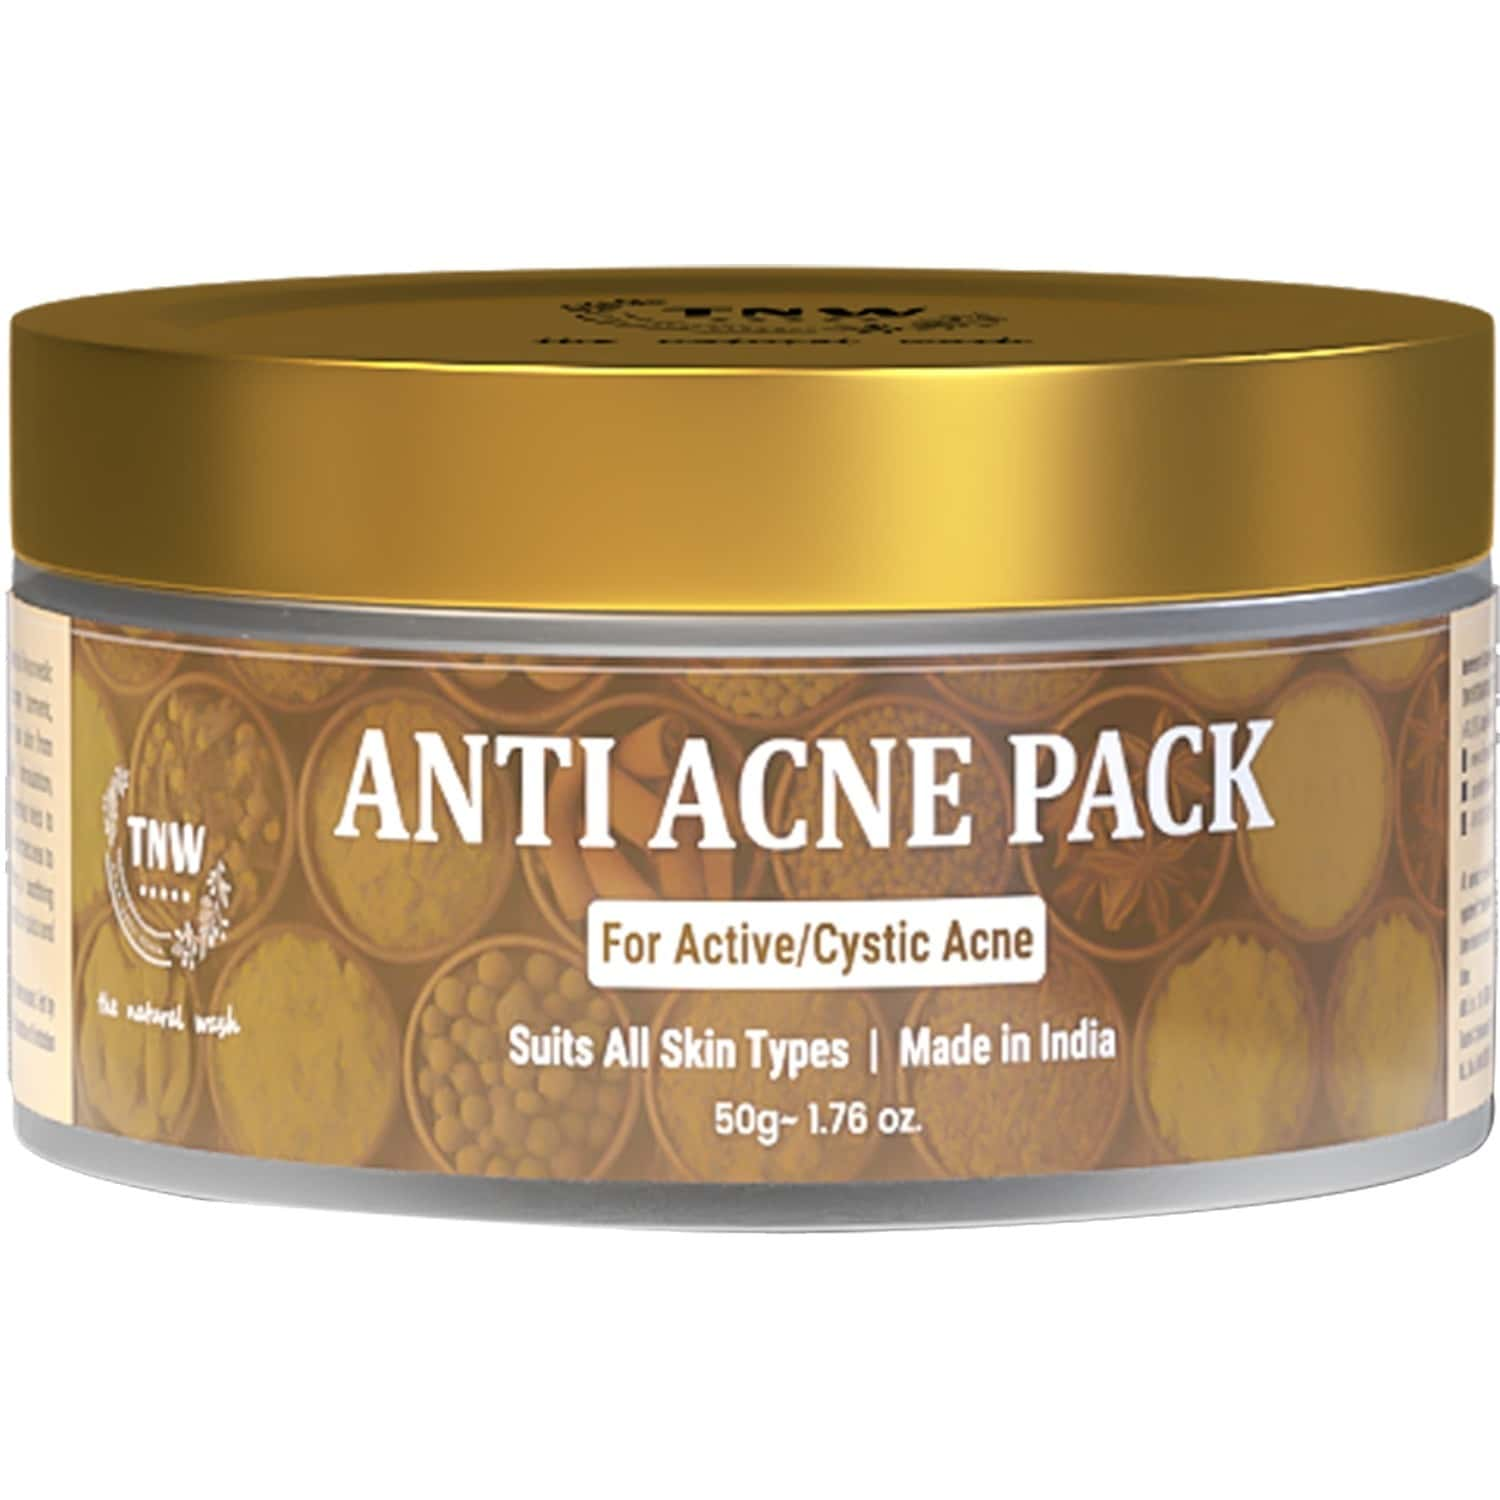 Tnw - The Natural Wash Anti Acne Face Pack For Acne And Pimple Free Skin - 50 Ml